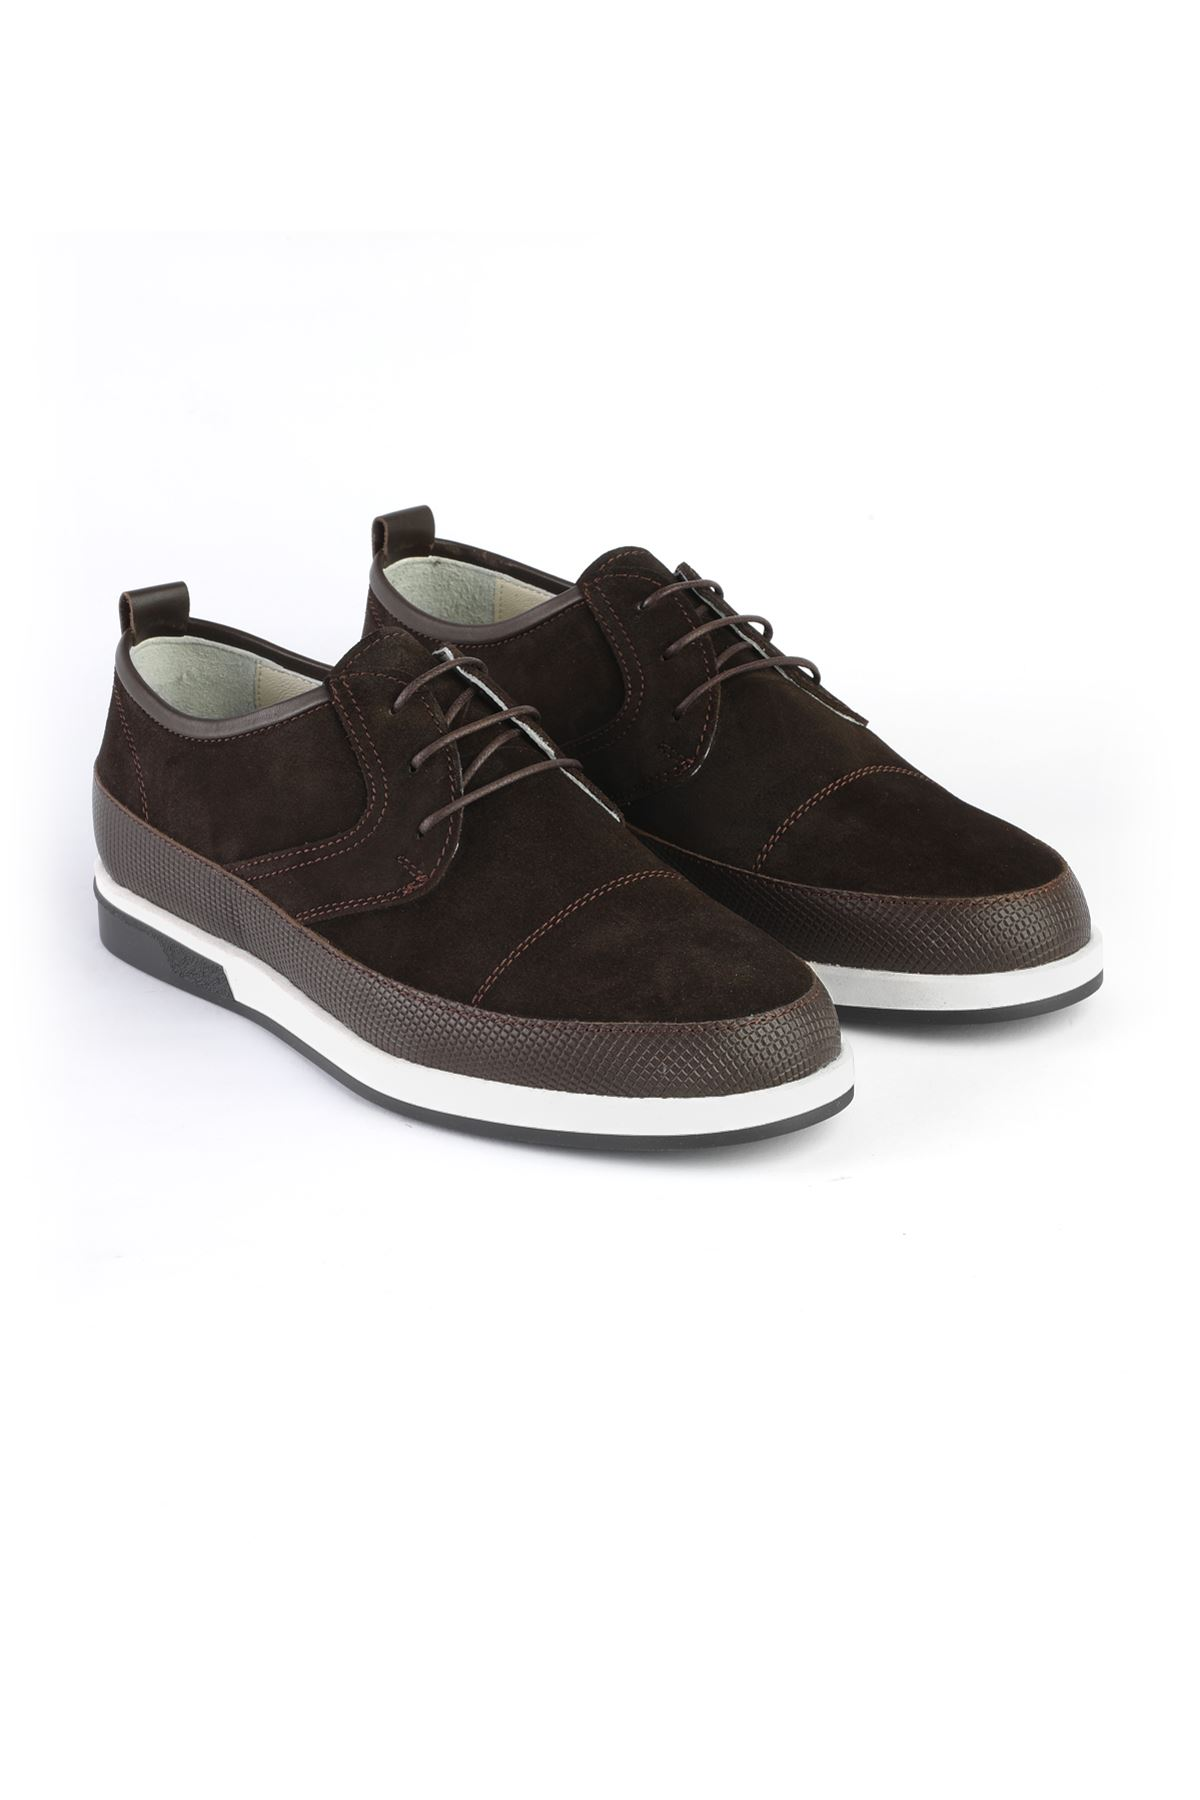 Libero 3367 Brown Loafers Shoes